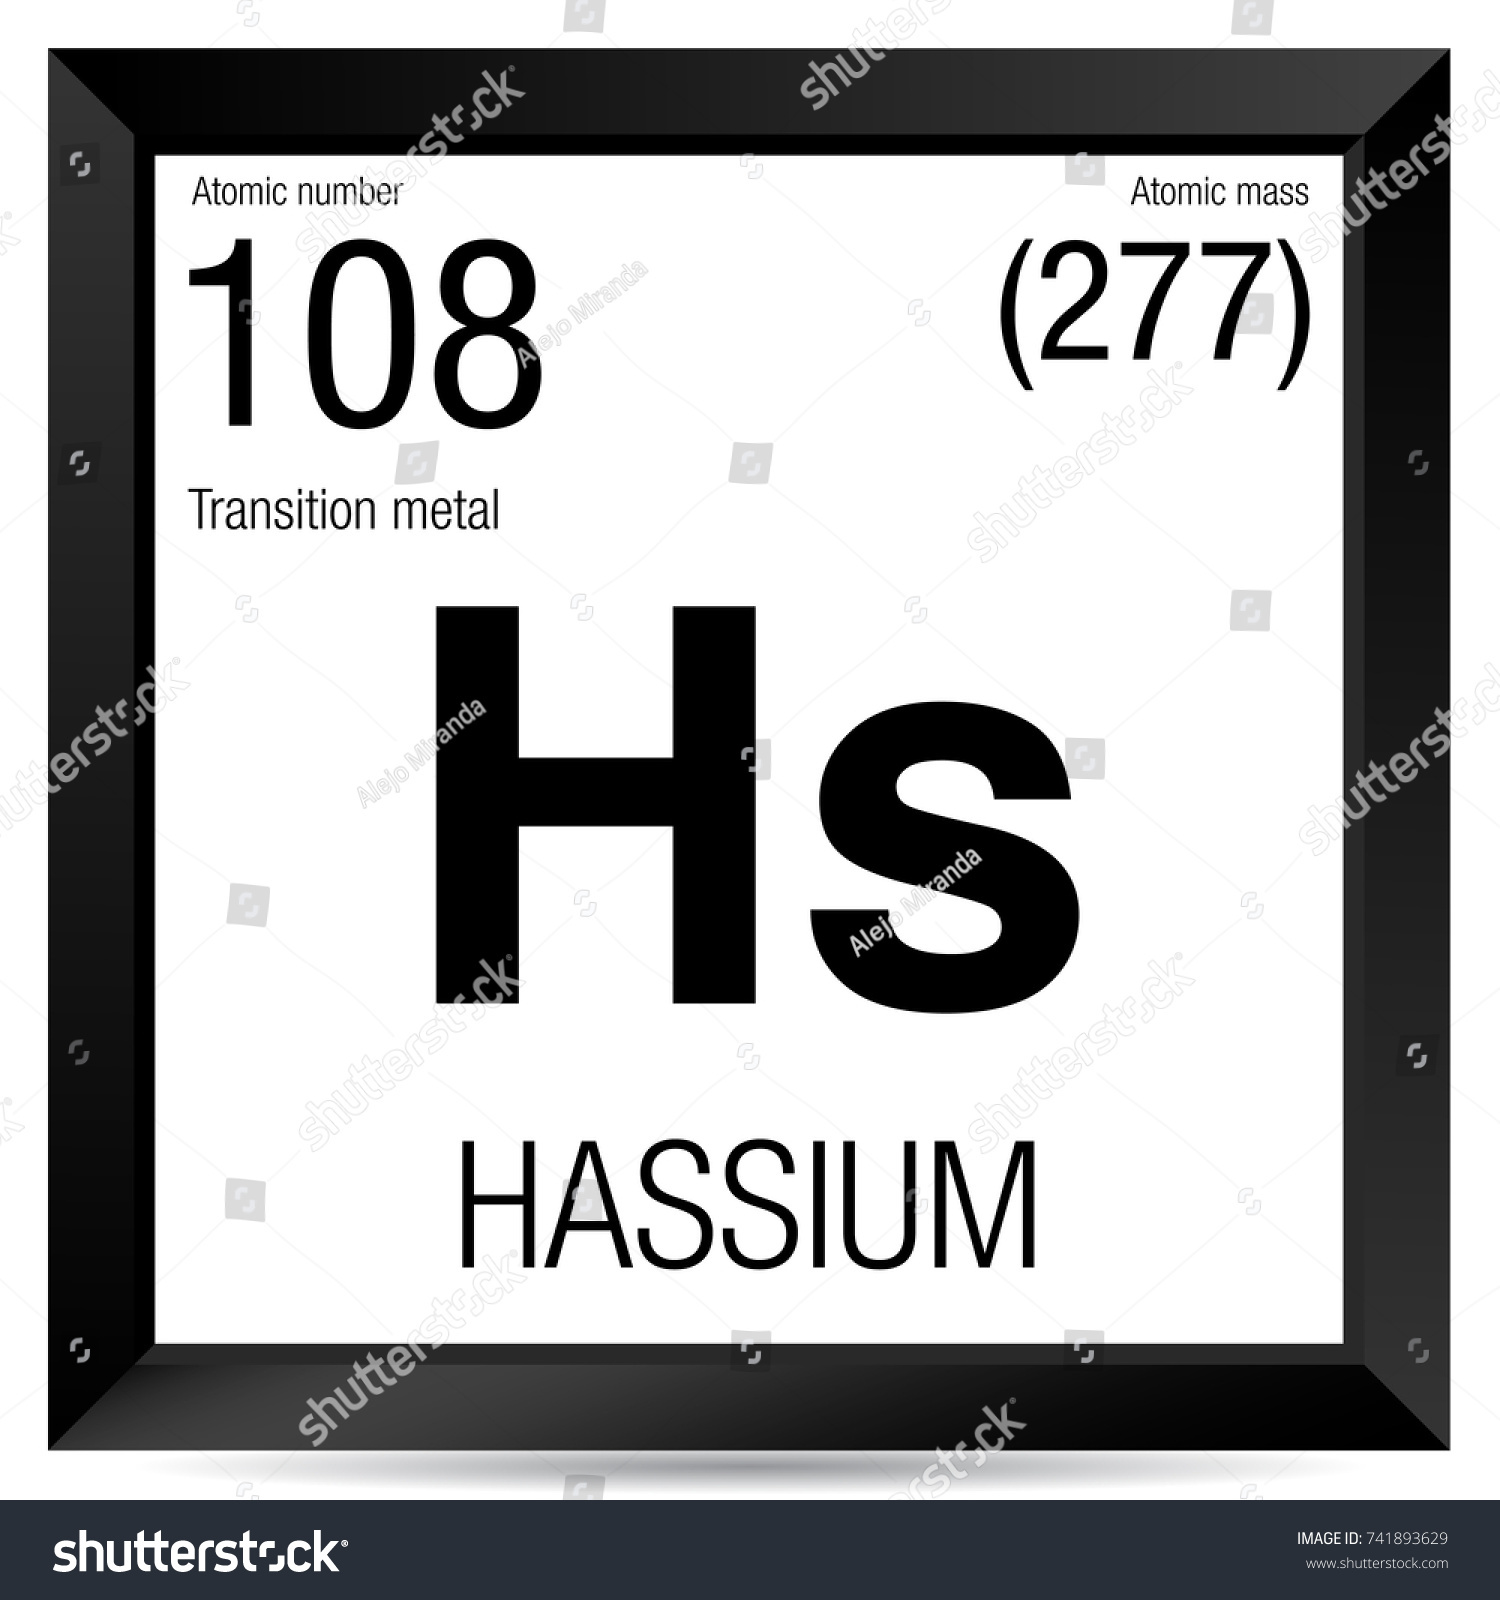 Table periodic sodium images periodic table and sample with full the periodic table sodium image collections periodic table images magnesium symbol periodic table image collections periodic gamestrikefo Images